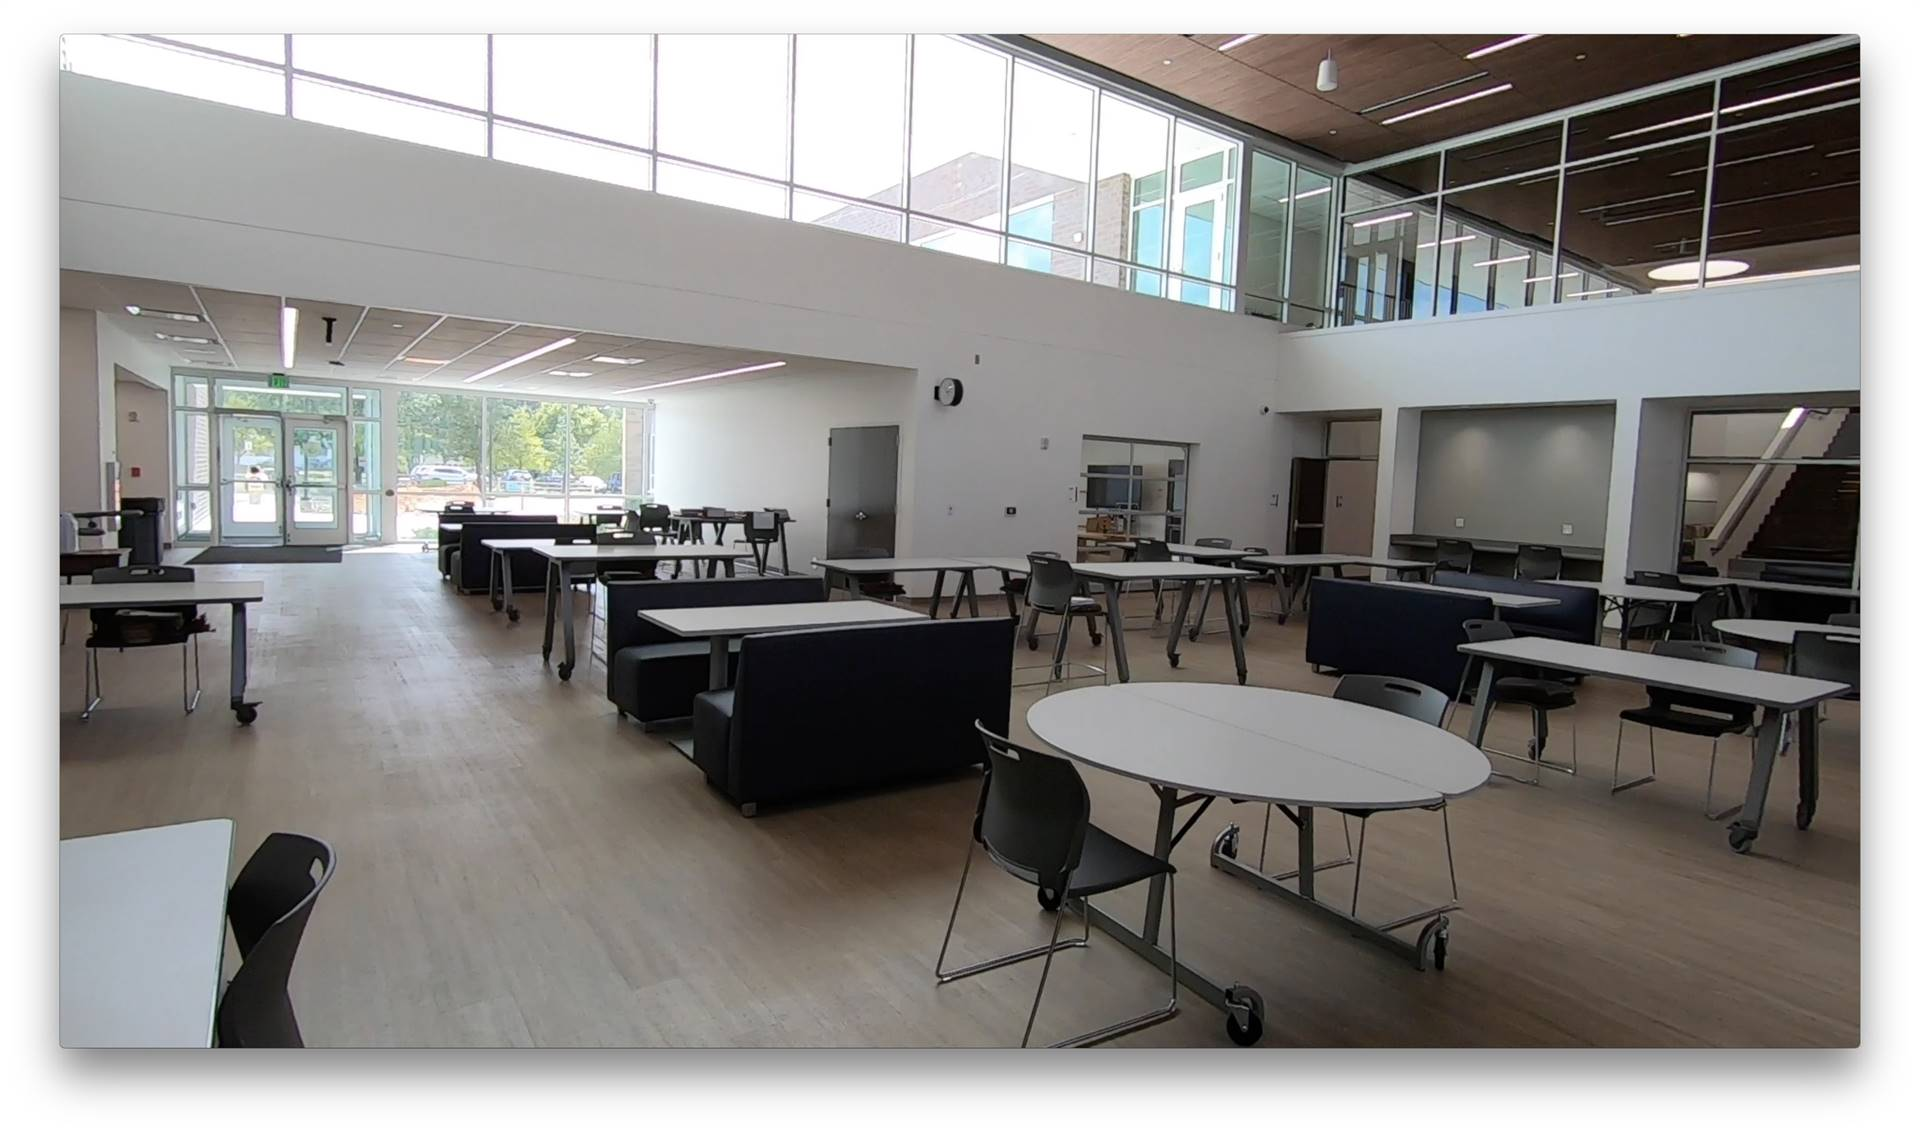 The dining commons